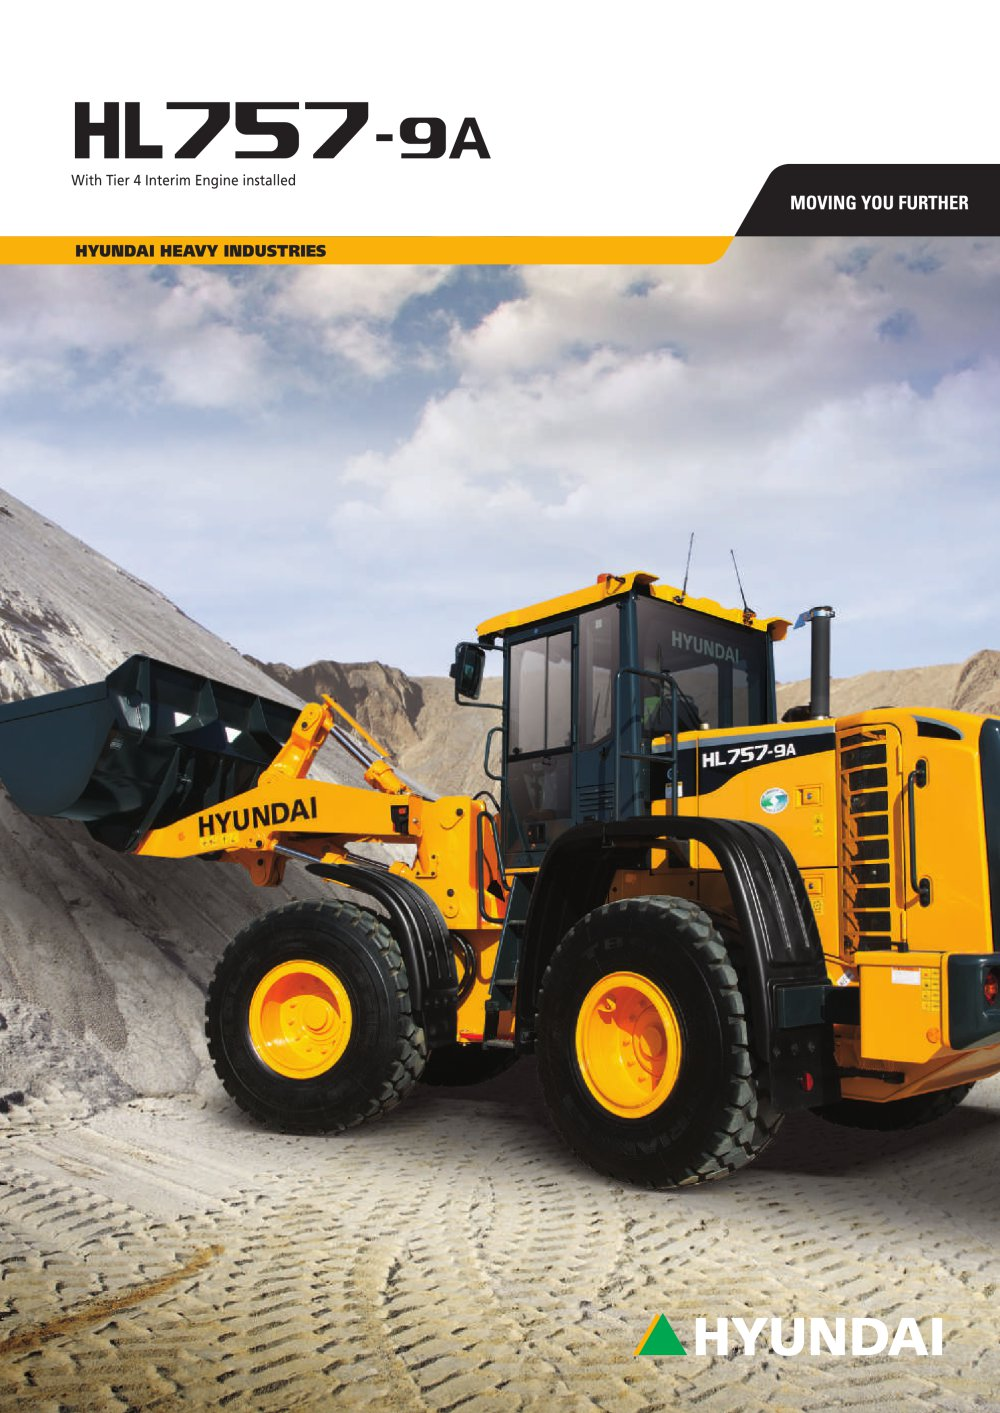 HL757-9A WHEEL LOADER - 1 / 4 Pages